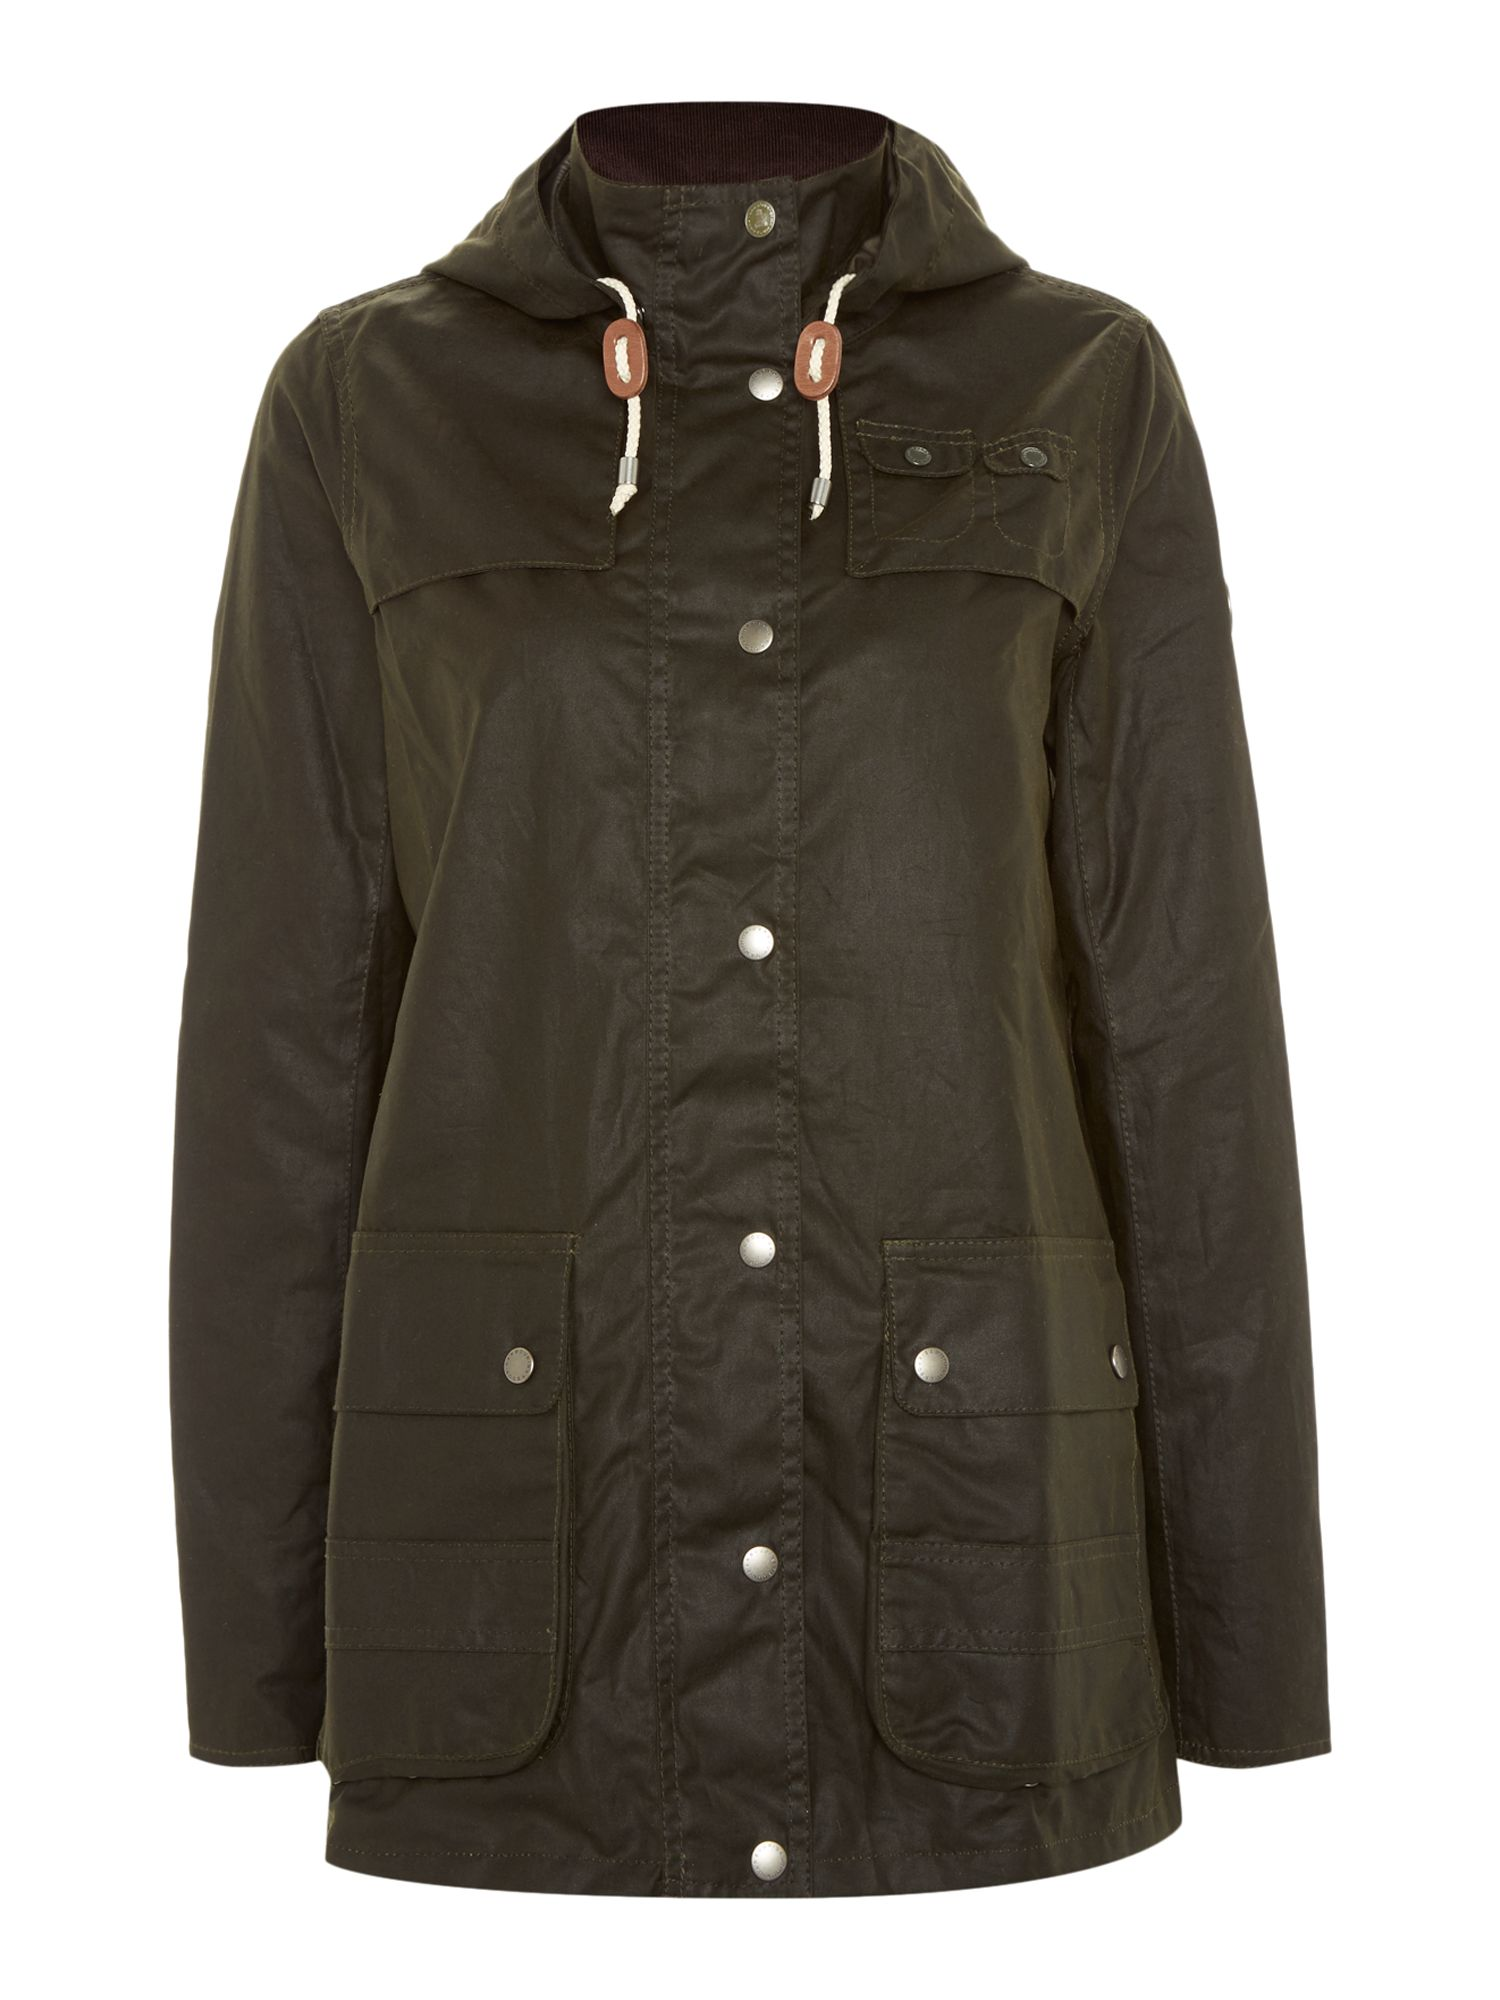 Barbour Headland wax jacket, Olive